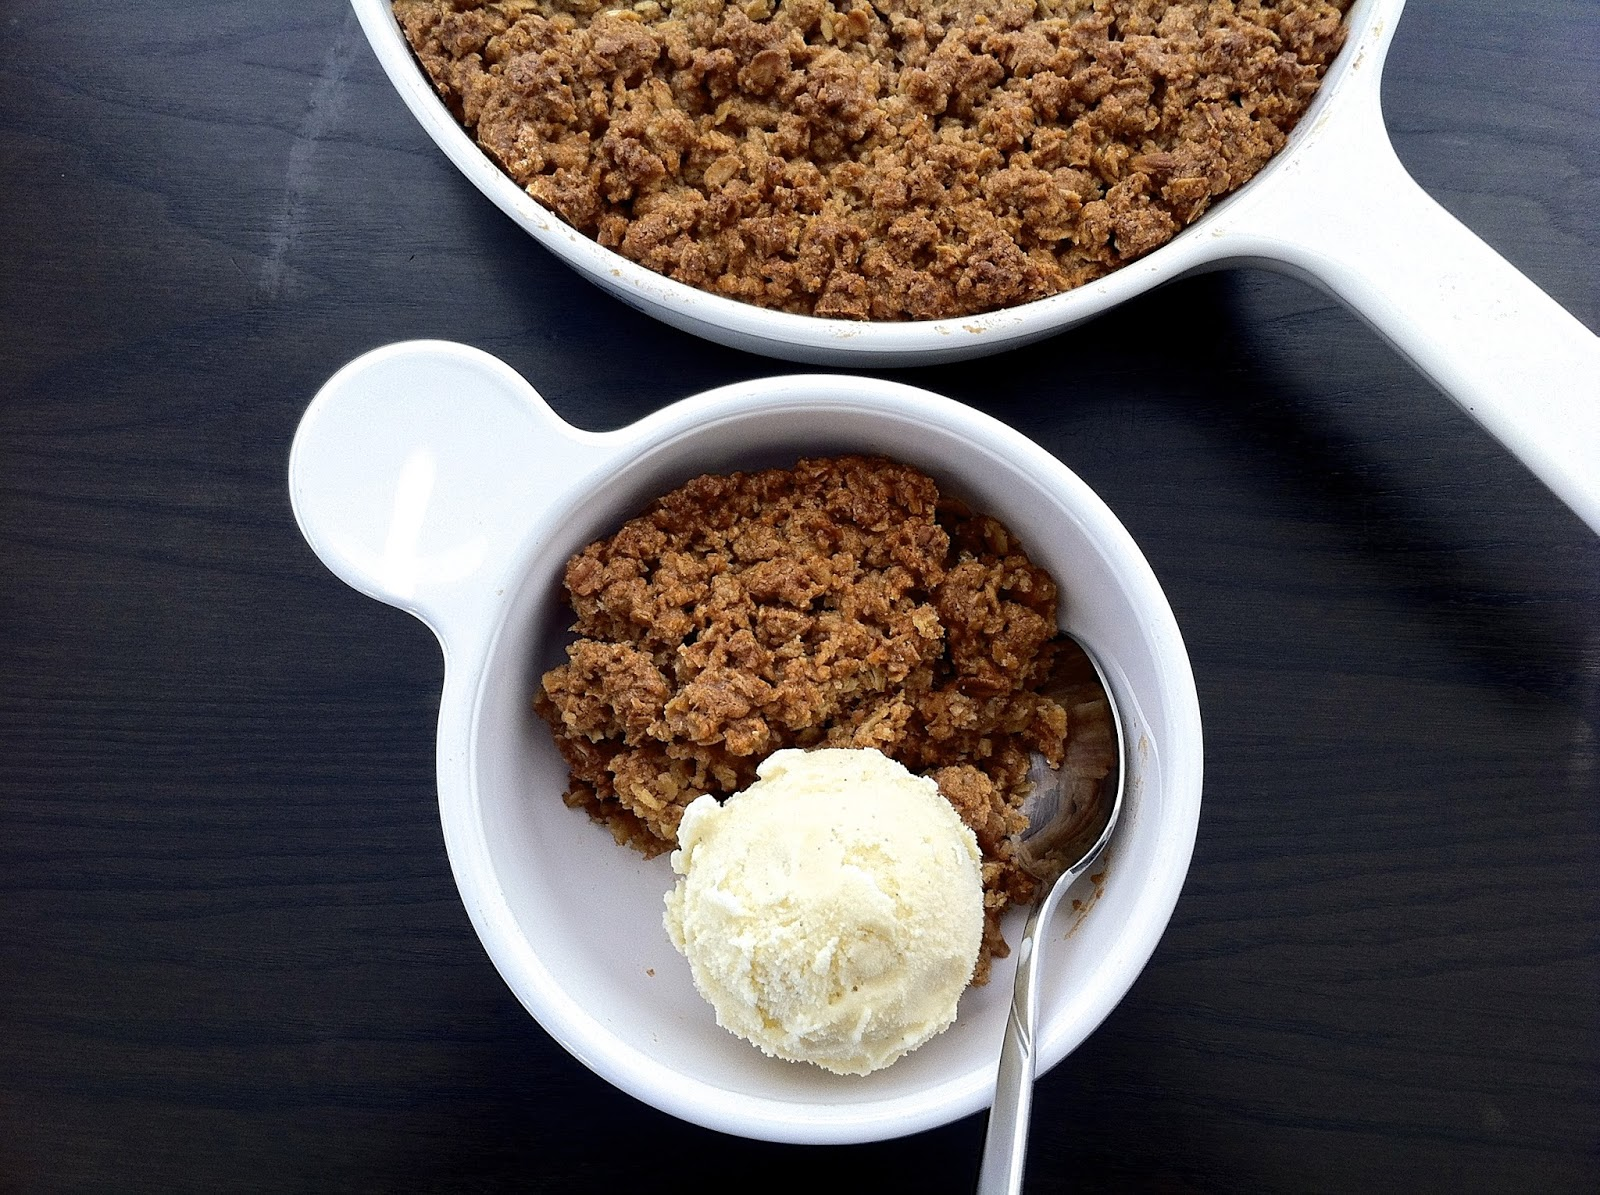 Maple Cheddar Apple Crumble with Ice Cream